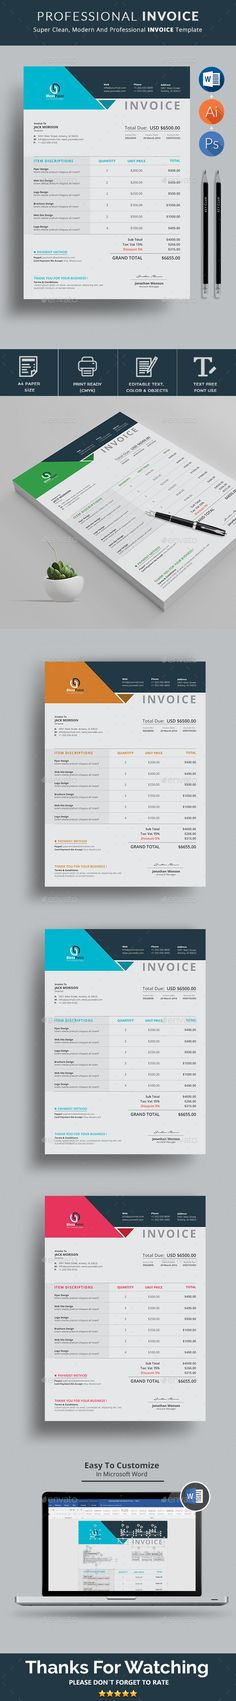 Invoice - Free Template Filing, Gaming and Template - filling out an invoice